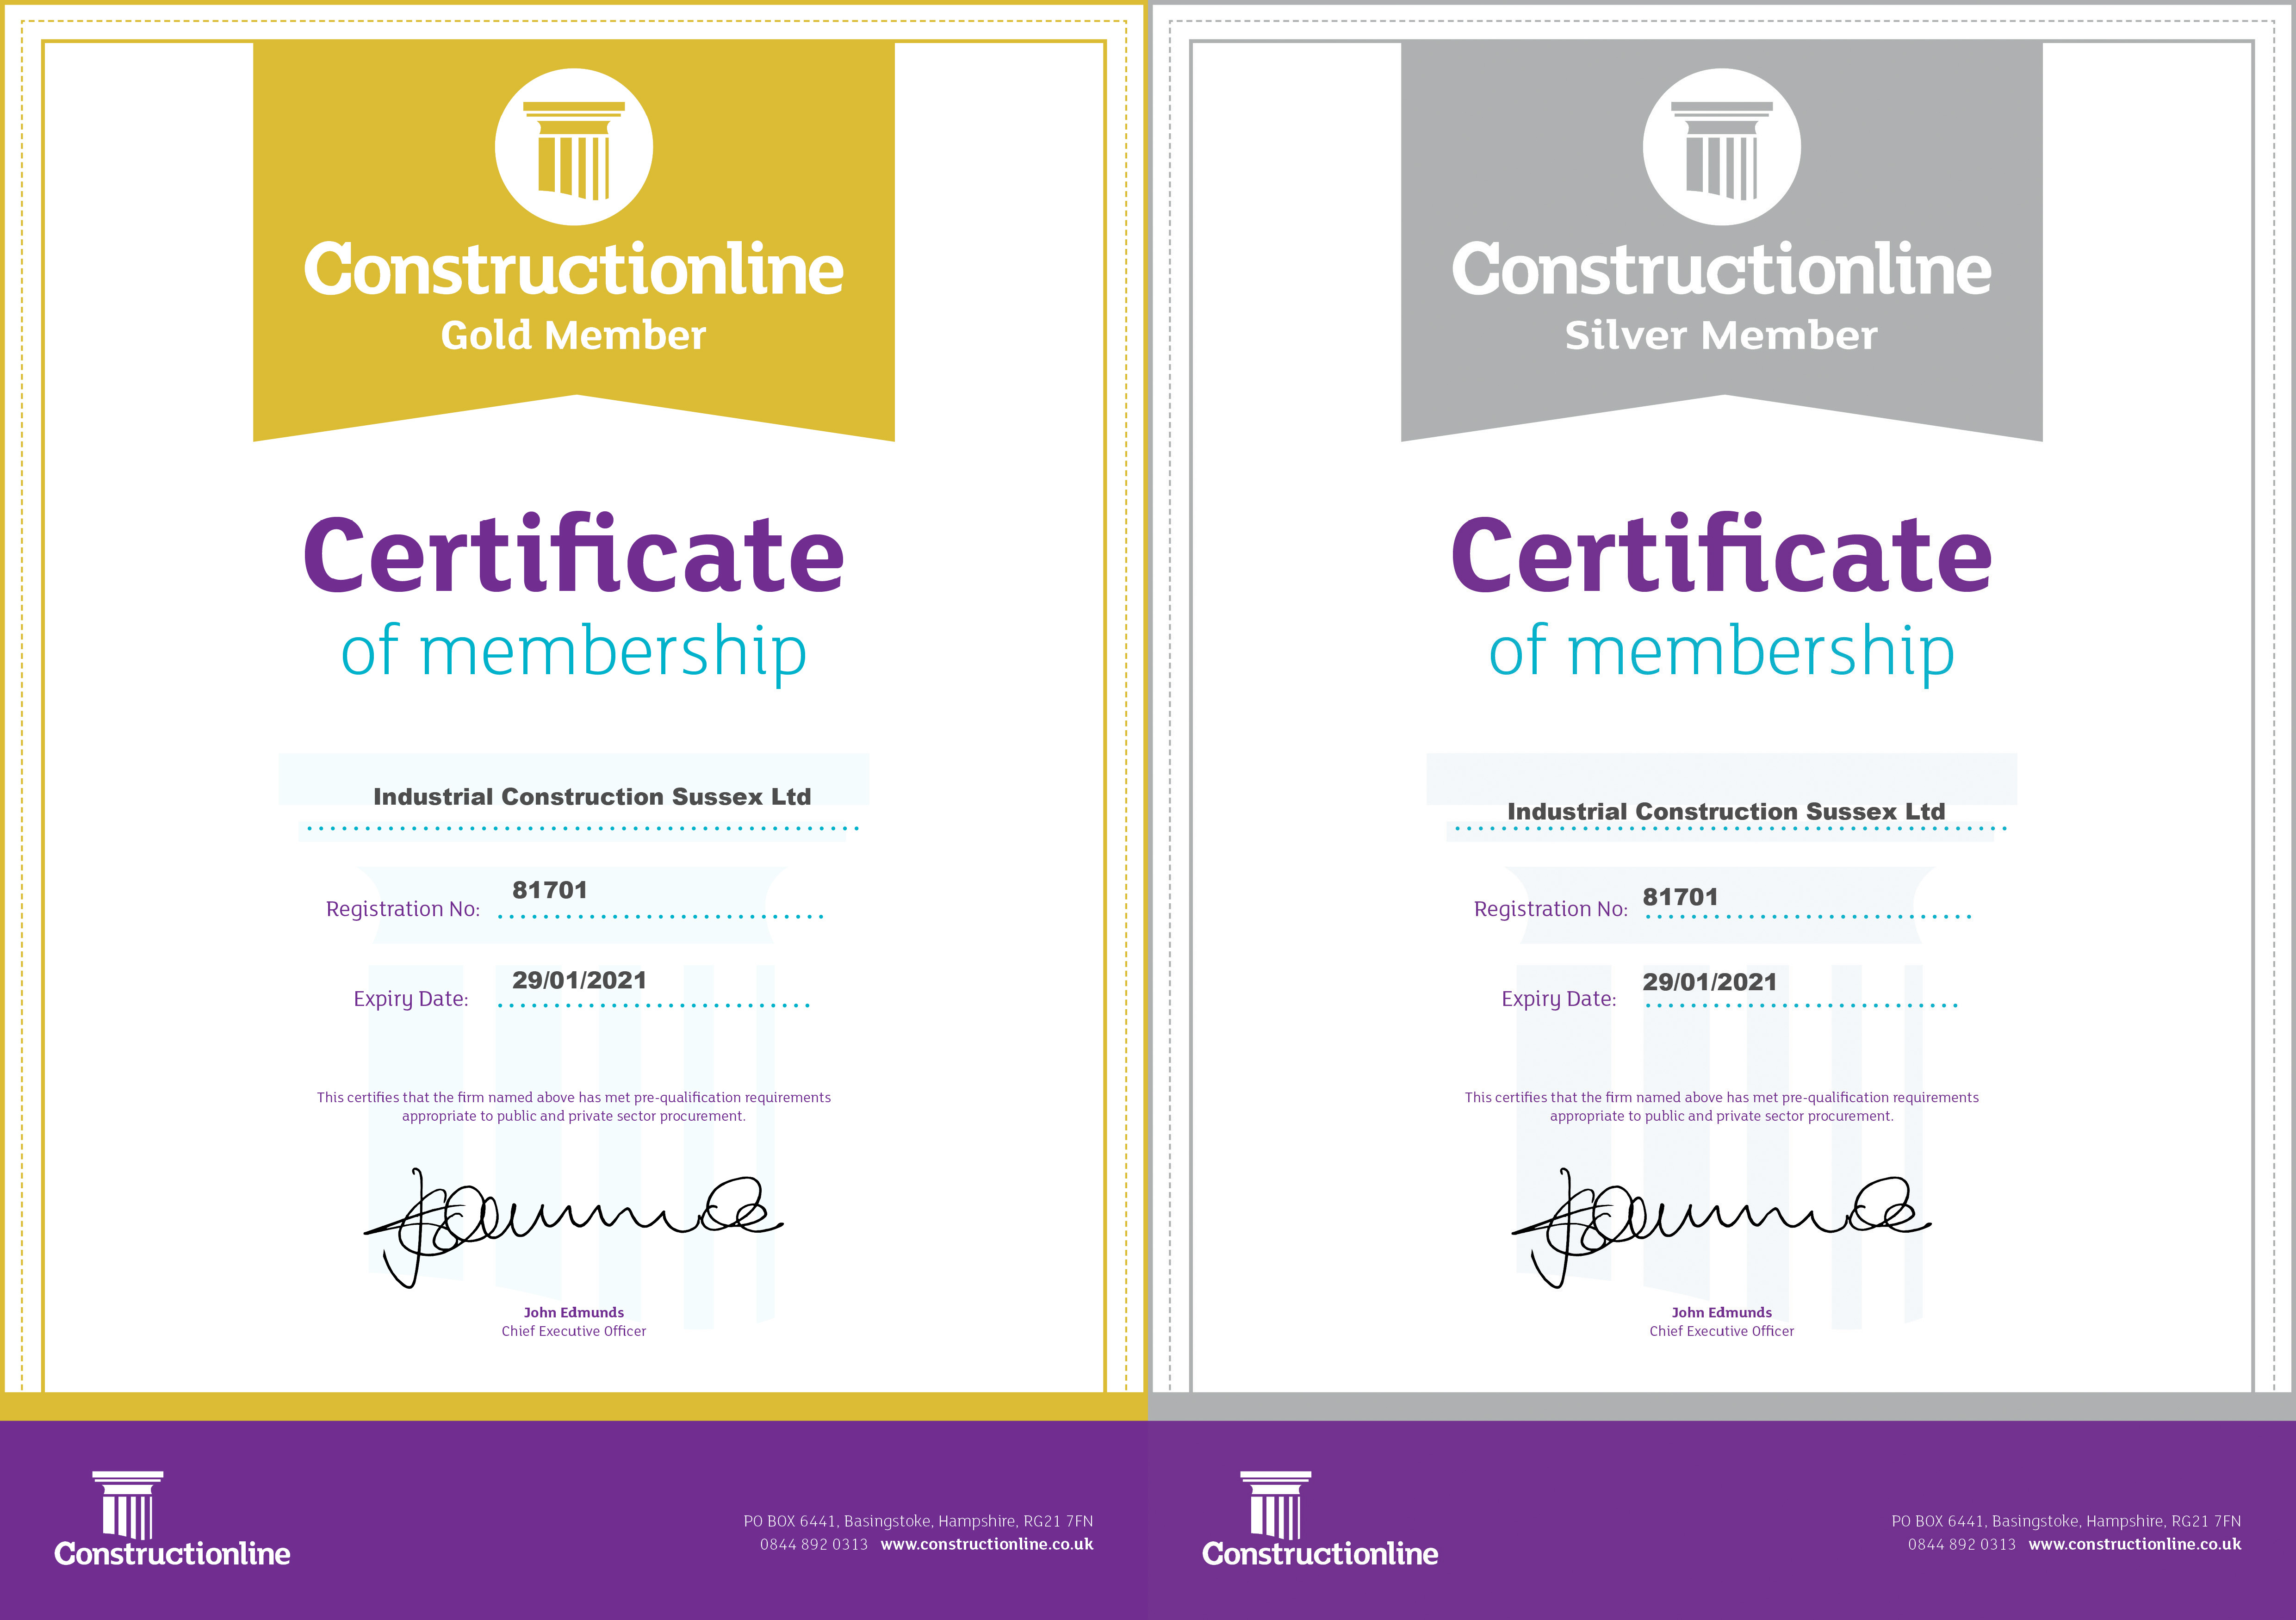 constructionline_gold_and_silver_cert_202021_double_4962